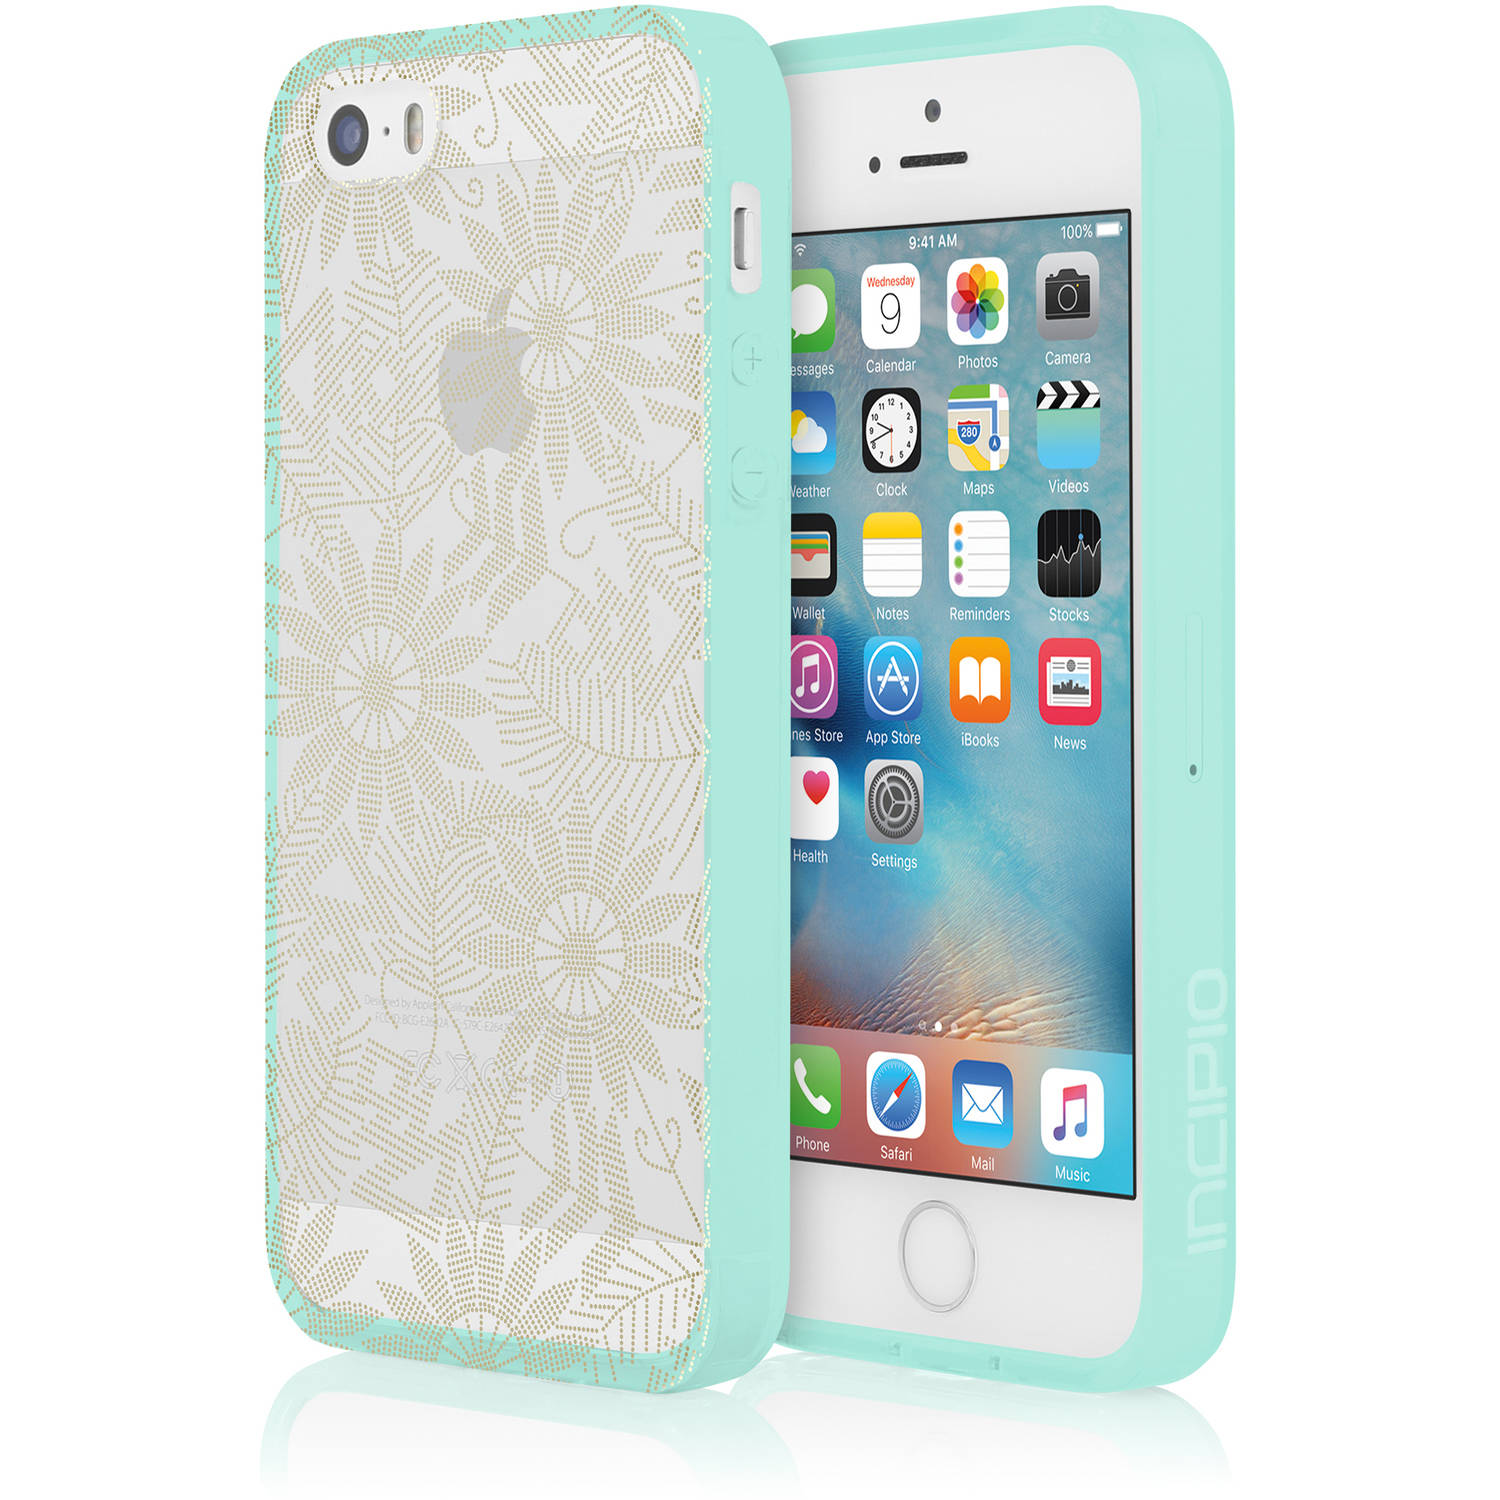 Incipio Design Series Beaded Daisy Case for Apple iPhone 5/5s/SE